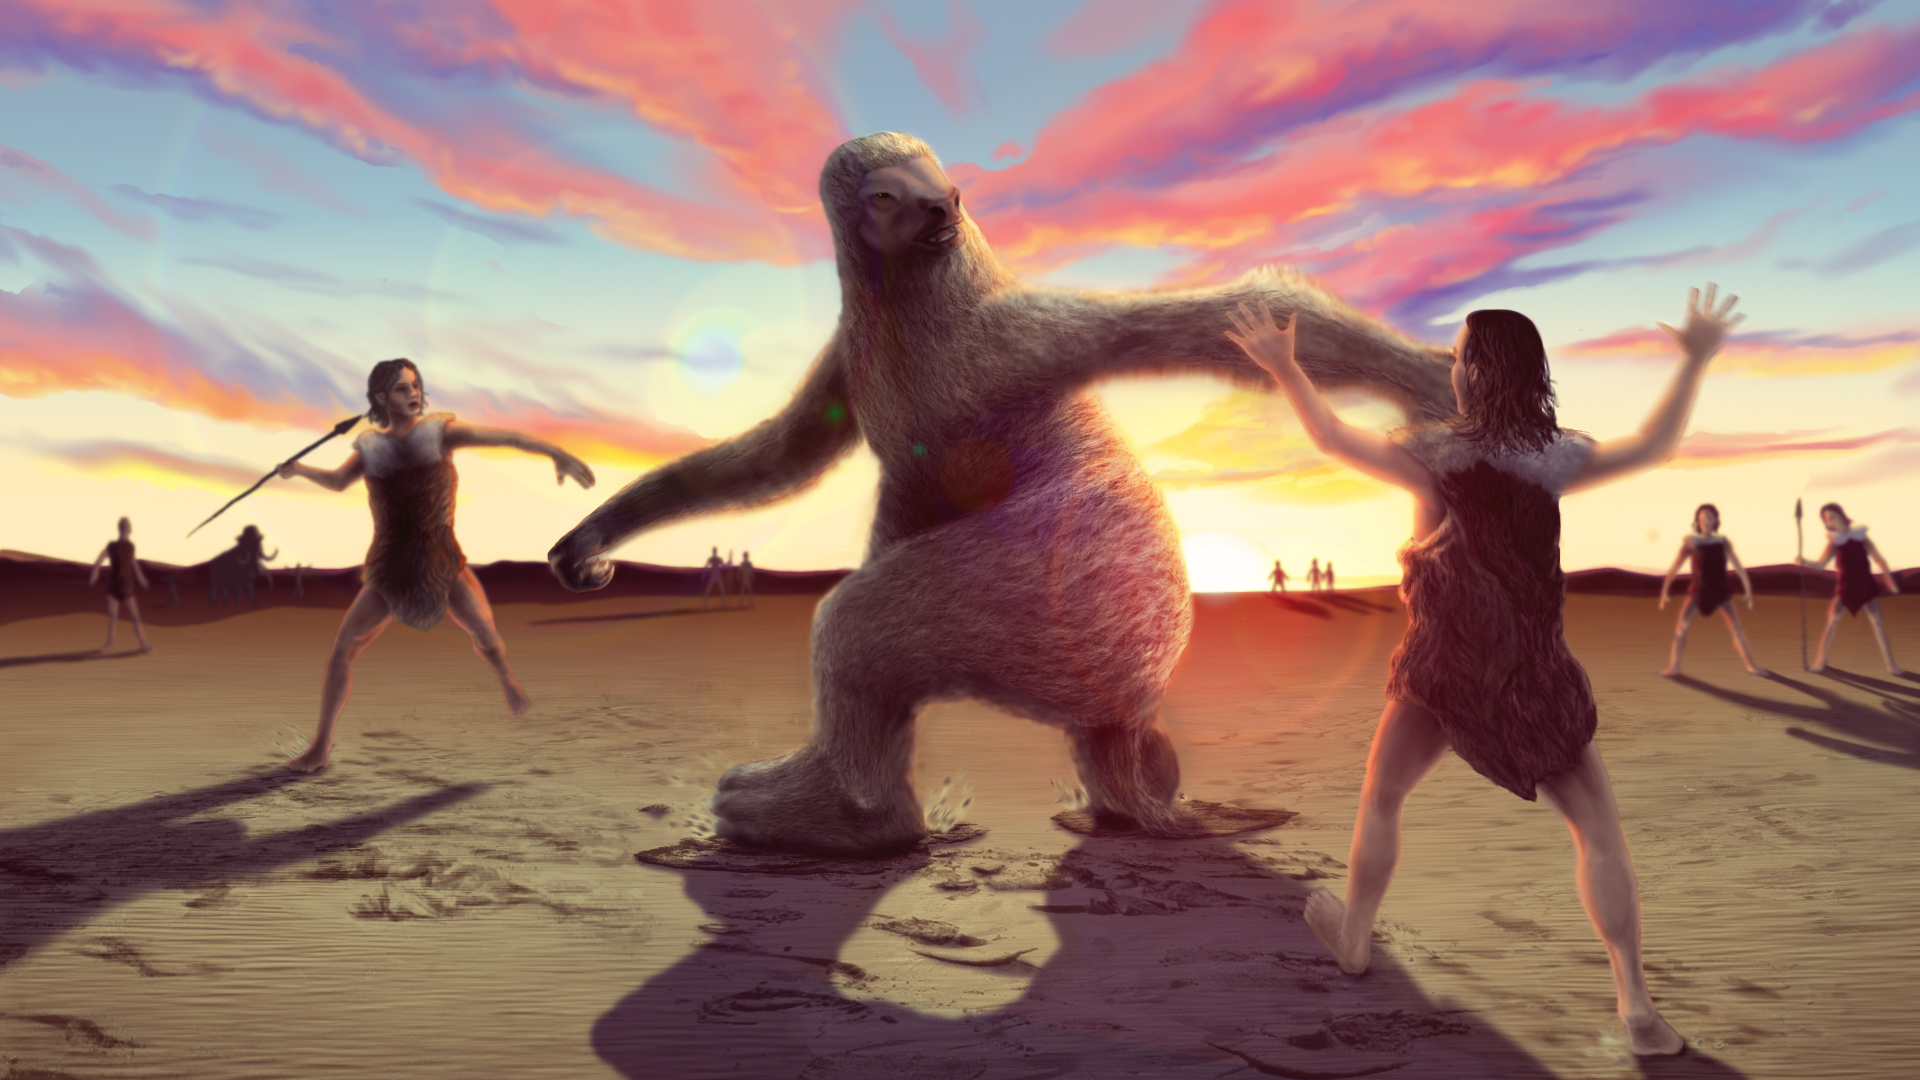 Reconstruction based on the fossil footprint evidence showing how human hunters stalked giant ground sloth to distract them before trying to land a killing blow.